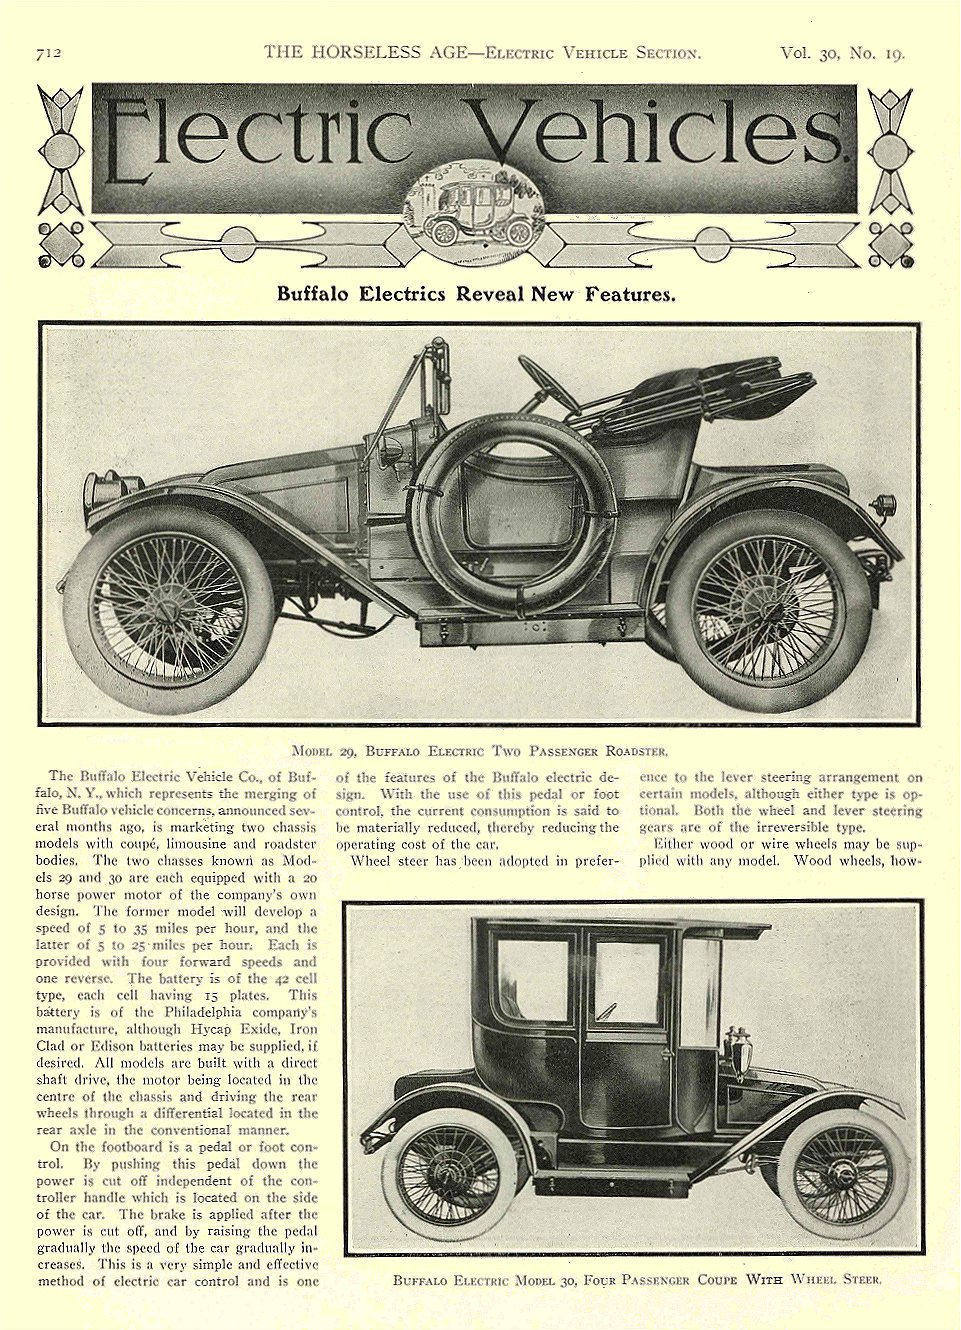 1912 11 6 BUFFALO Electric Article Buffalo Electrics Reveal New Features Model 20, Buffalo Electric Roadster Buffalo Electric Model 30 THE HORSELESS AGE November 6, 1912 University of Minnesota Library 8.5″x11.5″ page 712